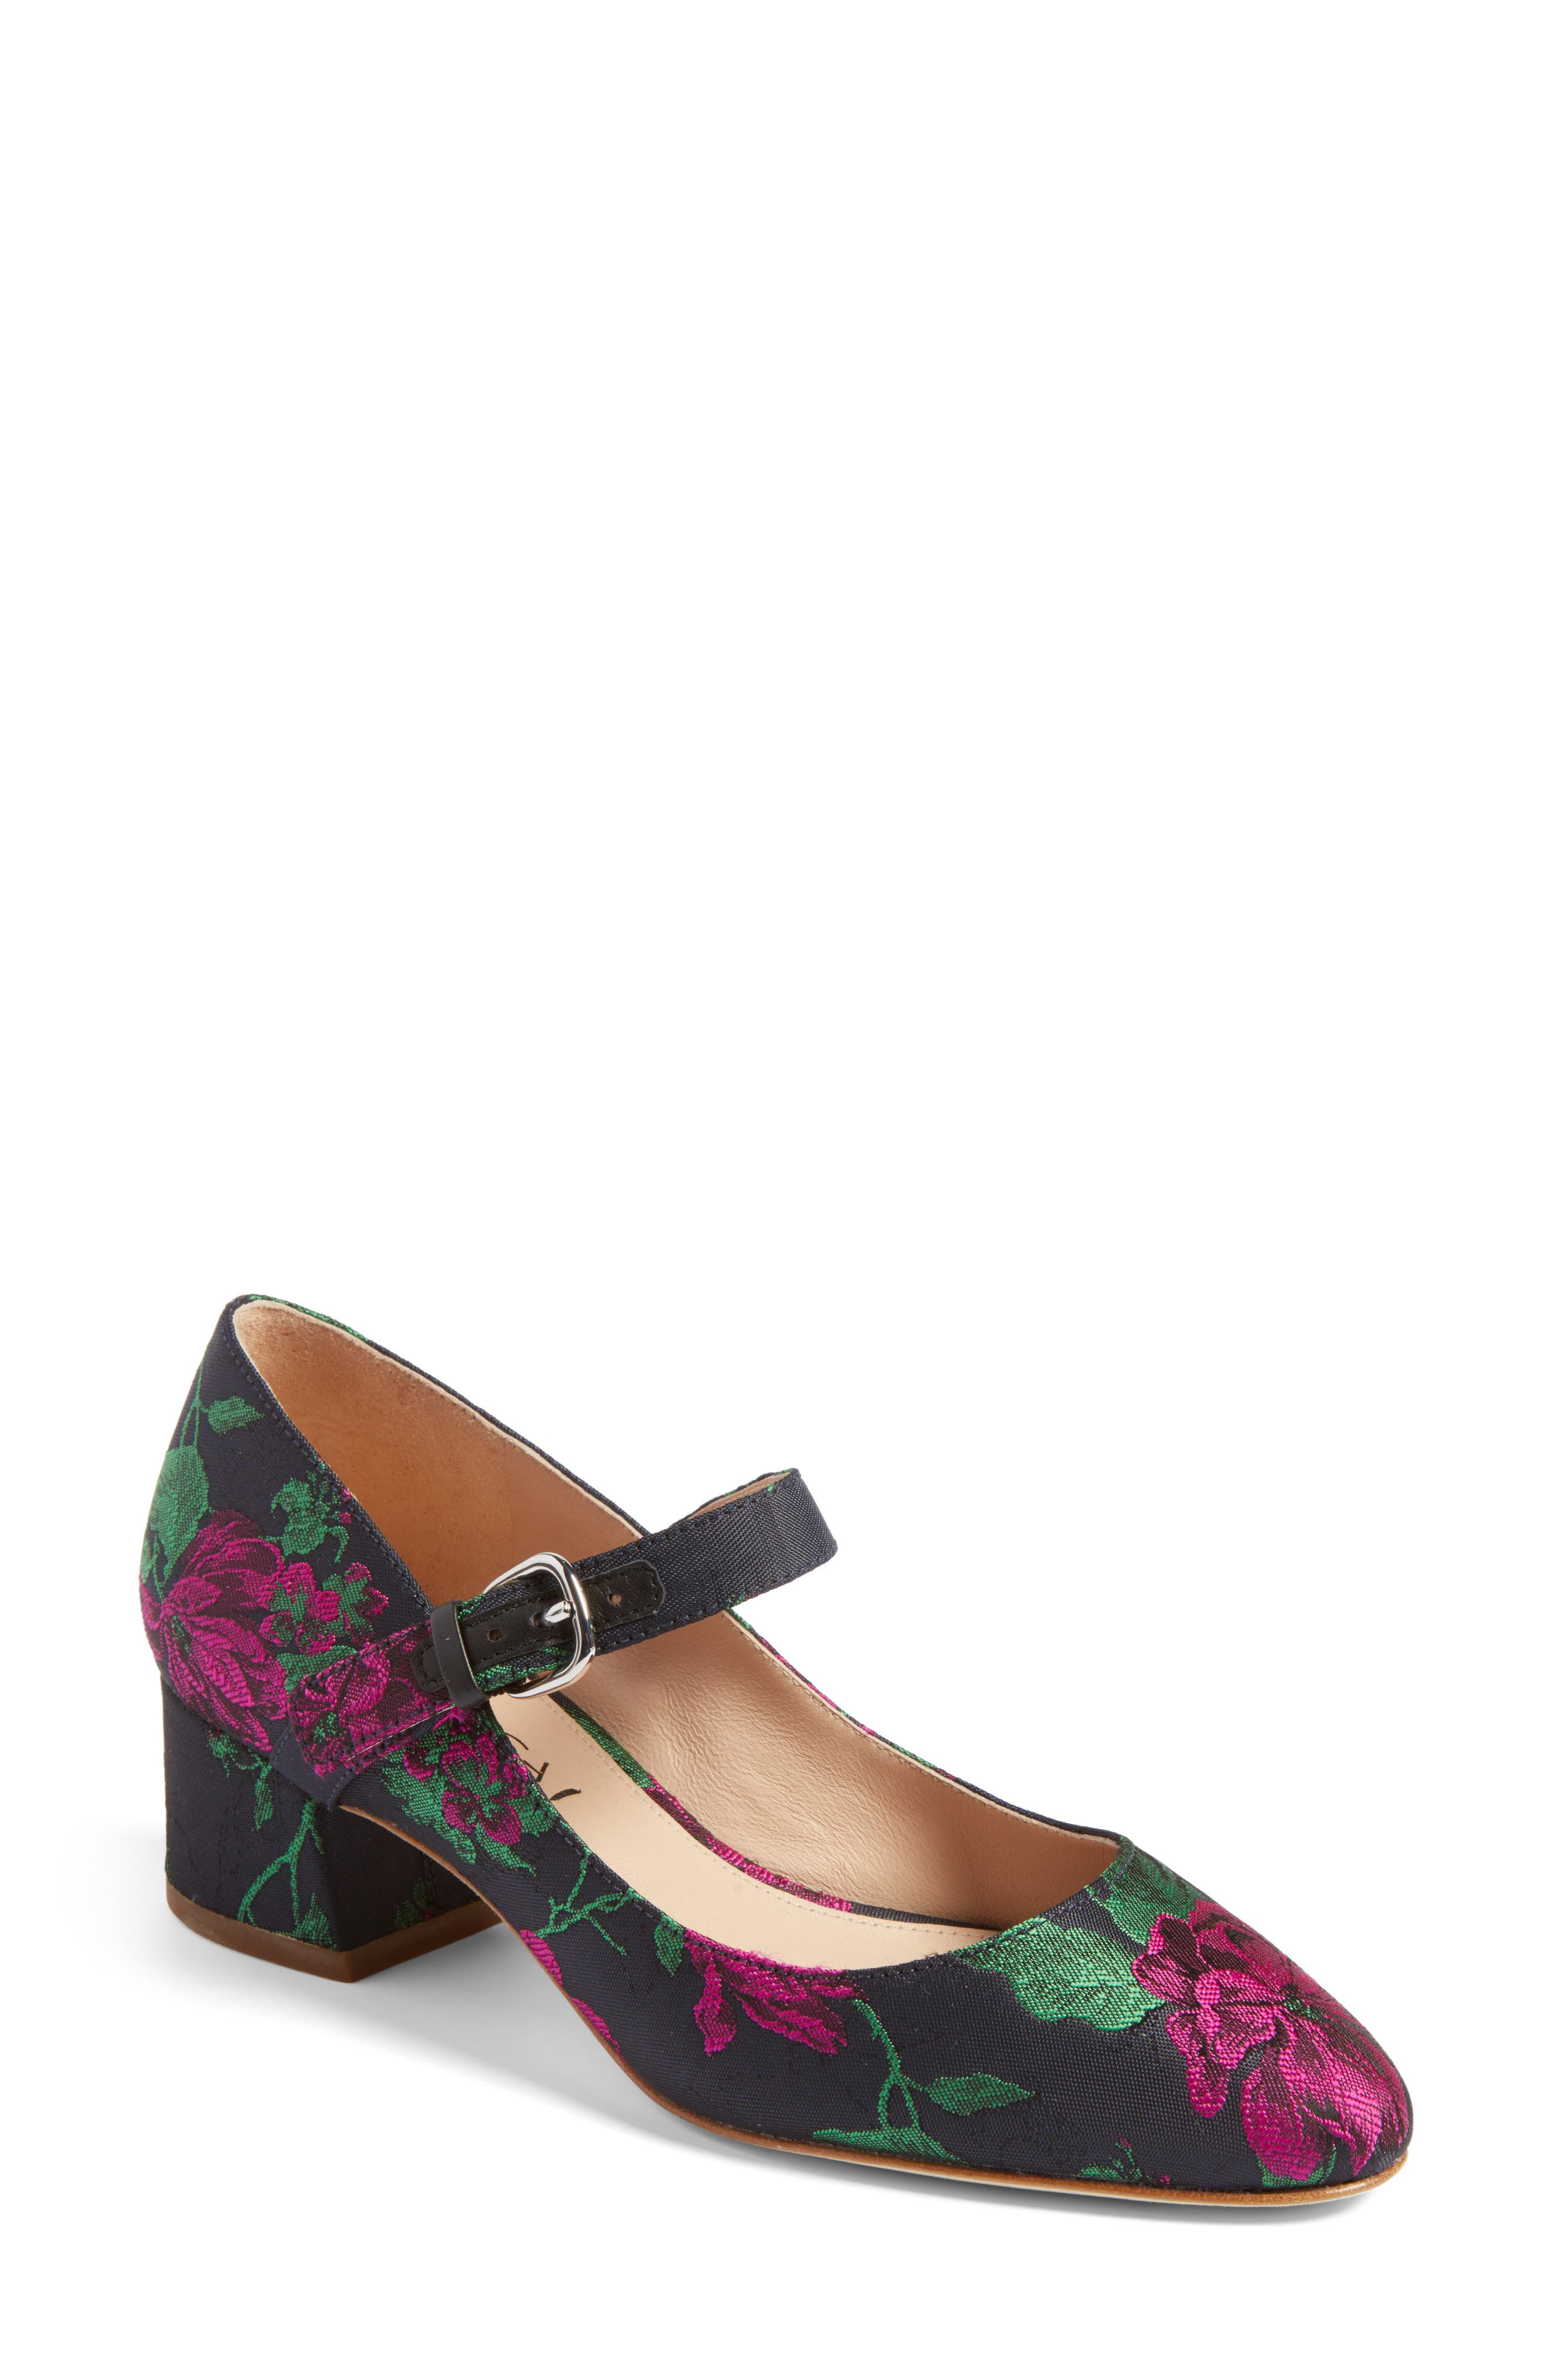 Via Spiga Alana Mary Jane Pump (Women)